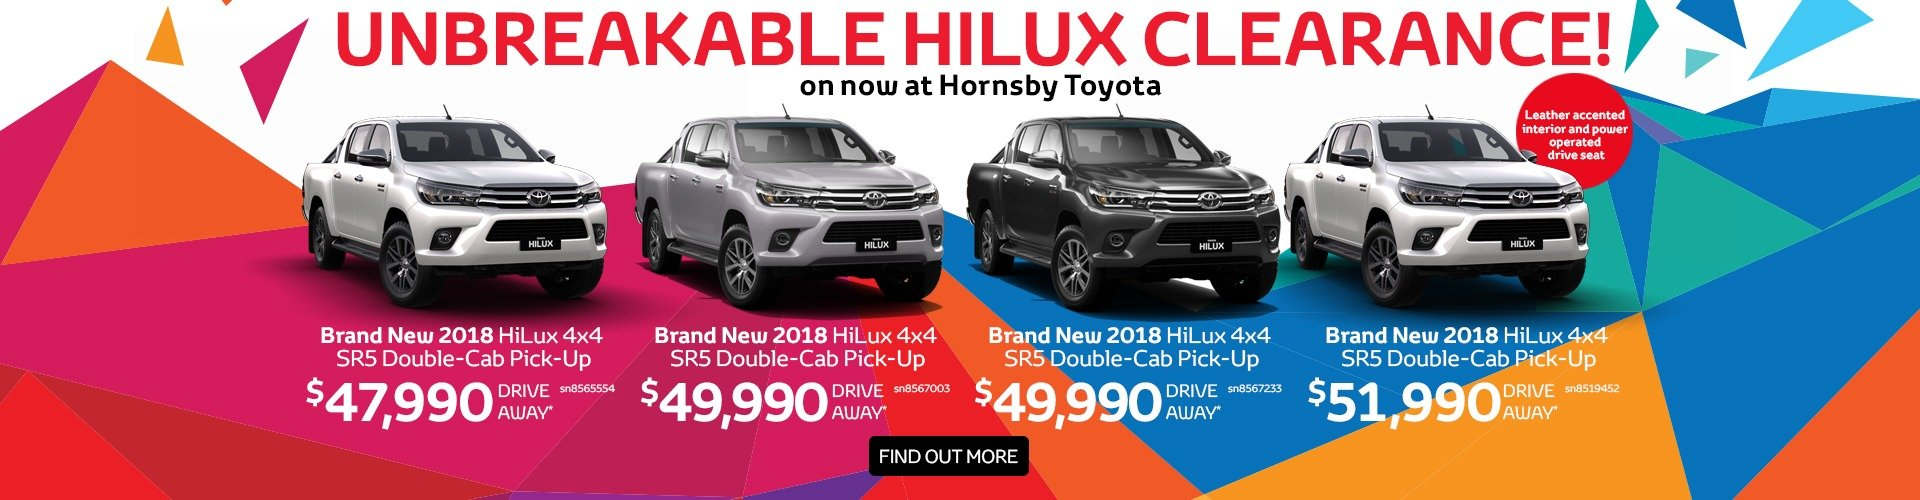 Hilux Clearance